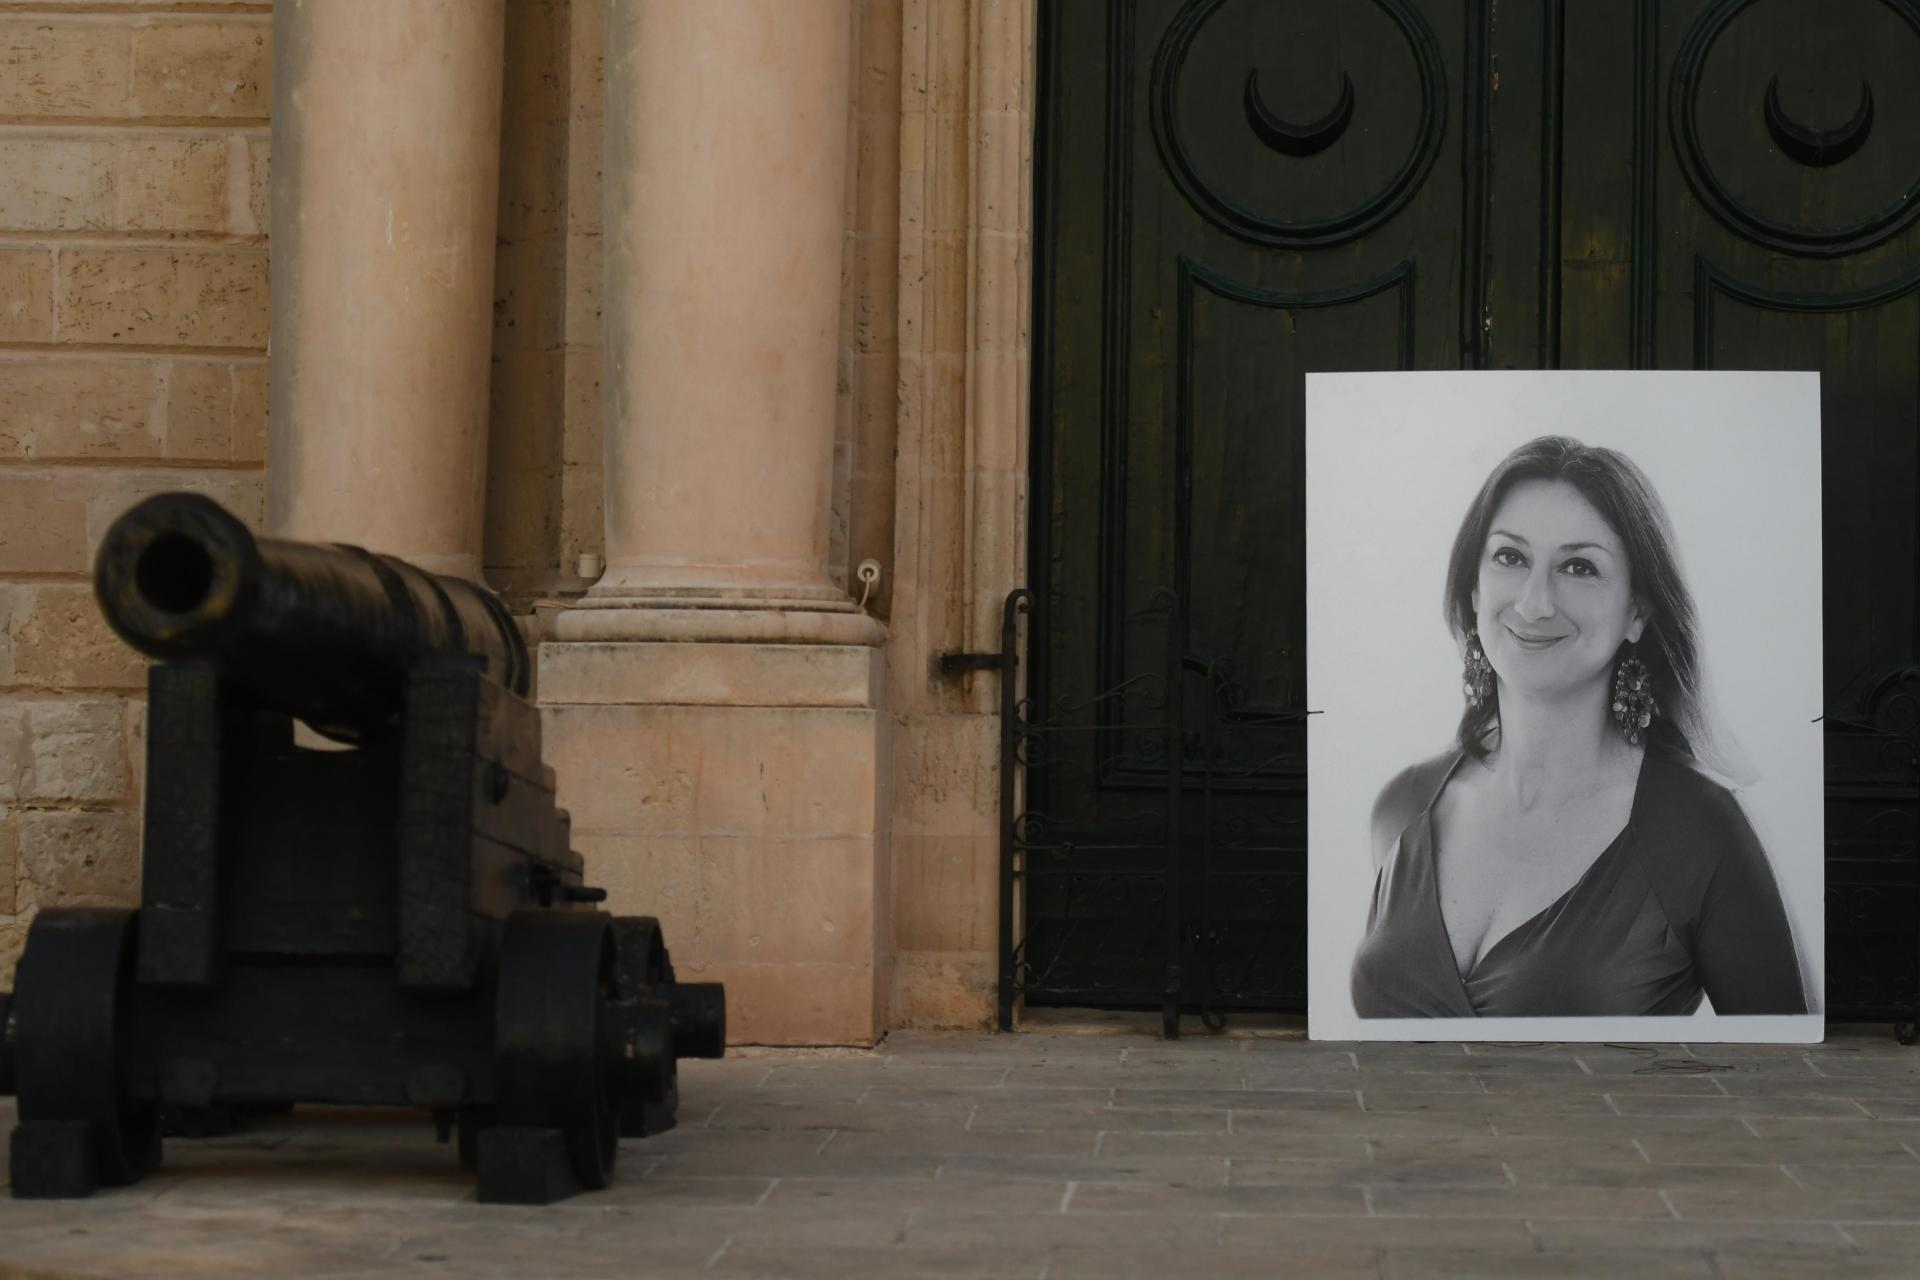 A portrait of Daphne Caruana Galizia rests against the door of the Office of the Prime Minister in Valletta. Photo: Jonathan Borg